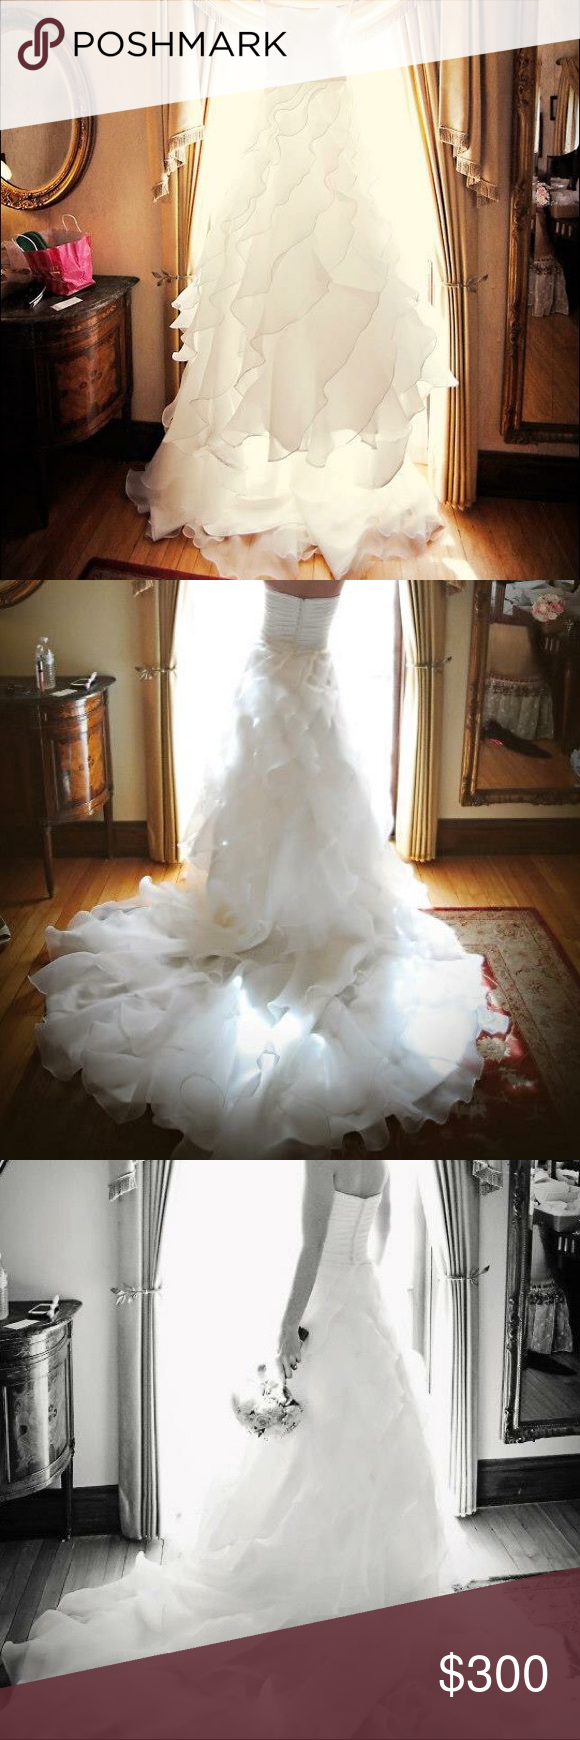 Wedding dress dry cleaning near me  Organza Ruffled Wedding Gown  Bustle Ball gowns and Ruffles